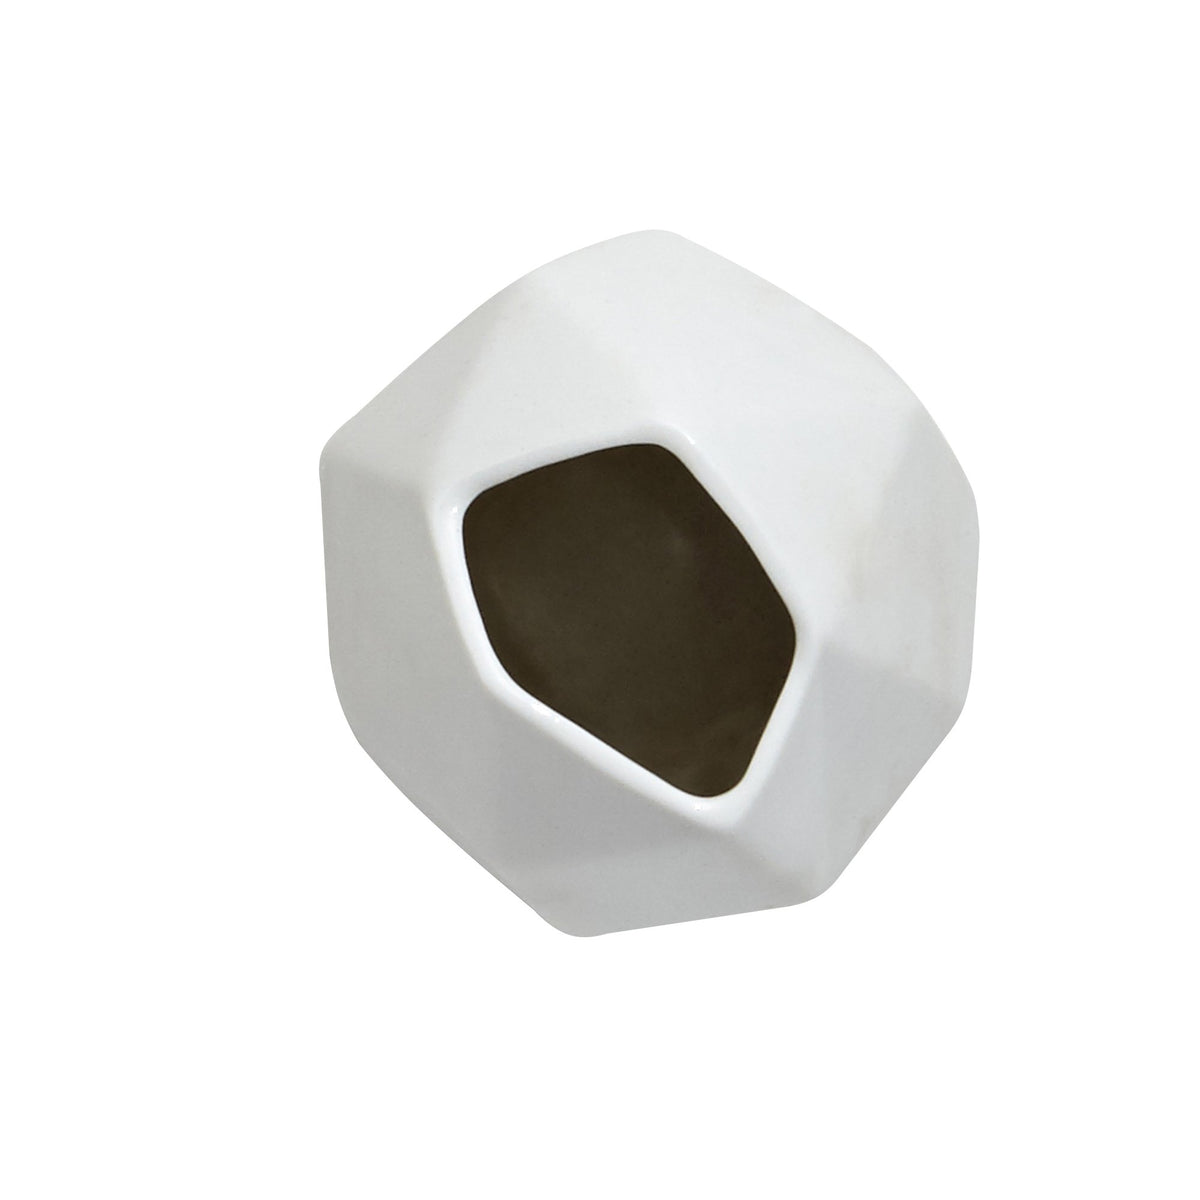 Surface White Matte Porcelain Mini Vase